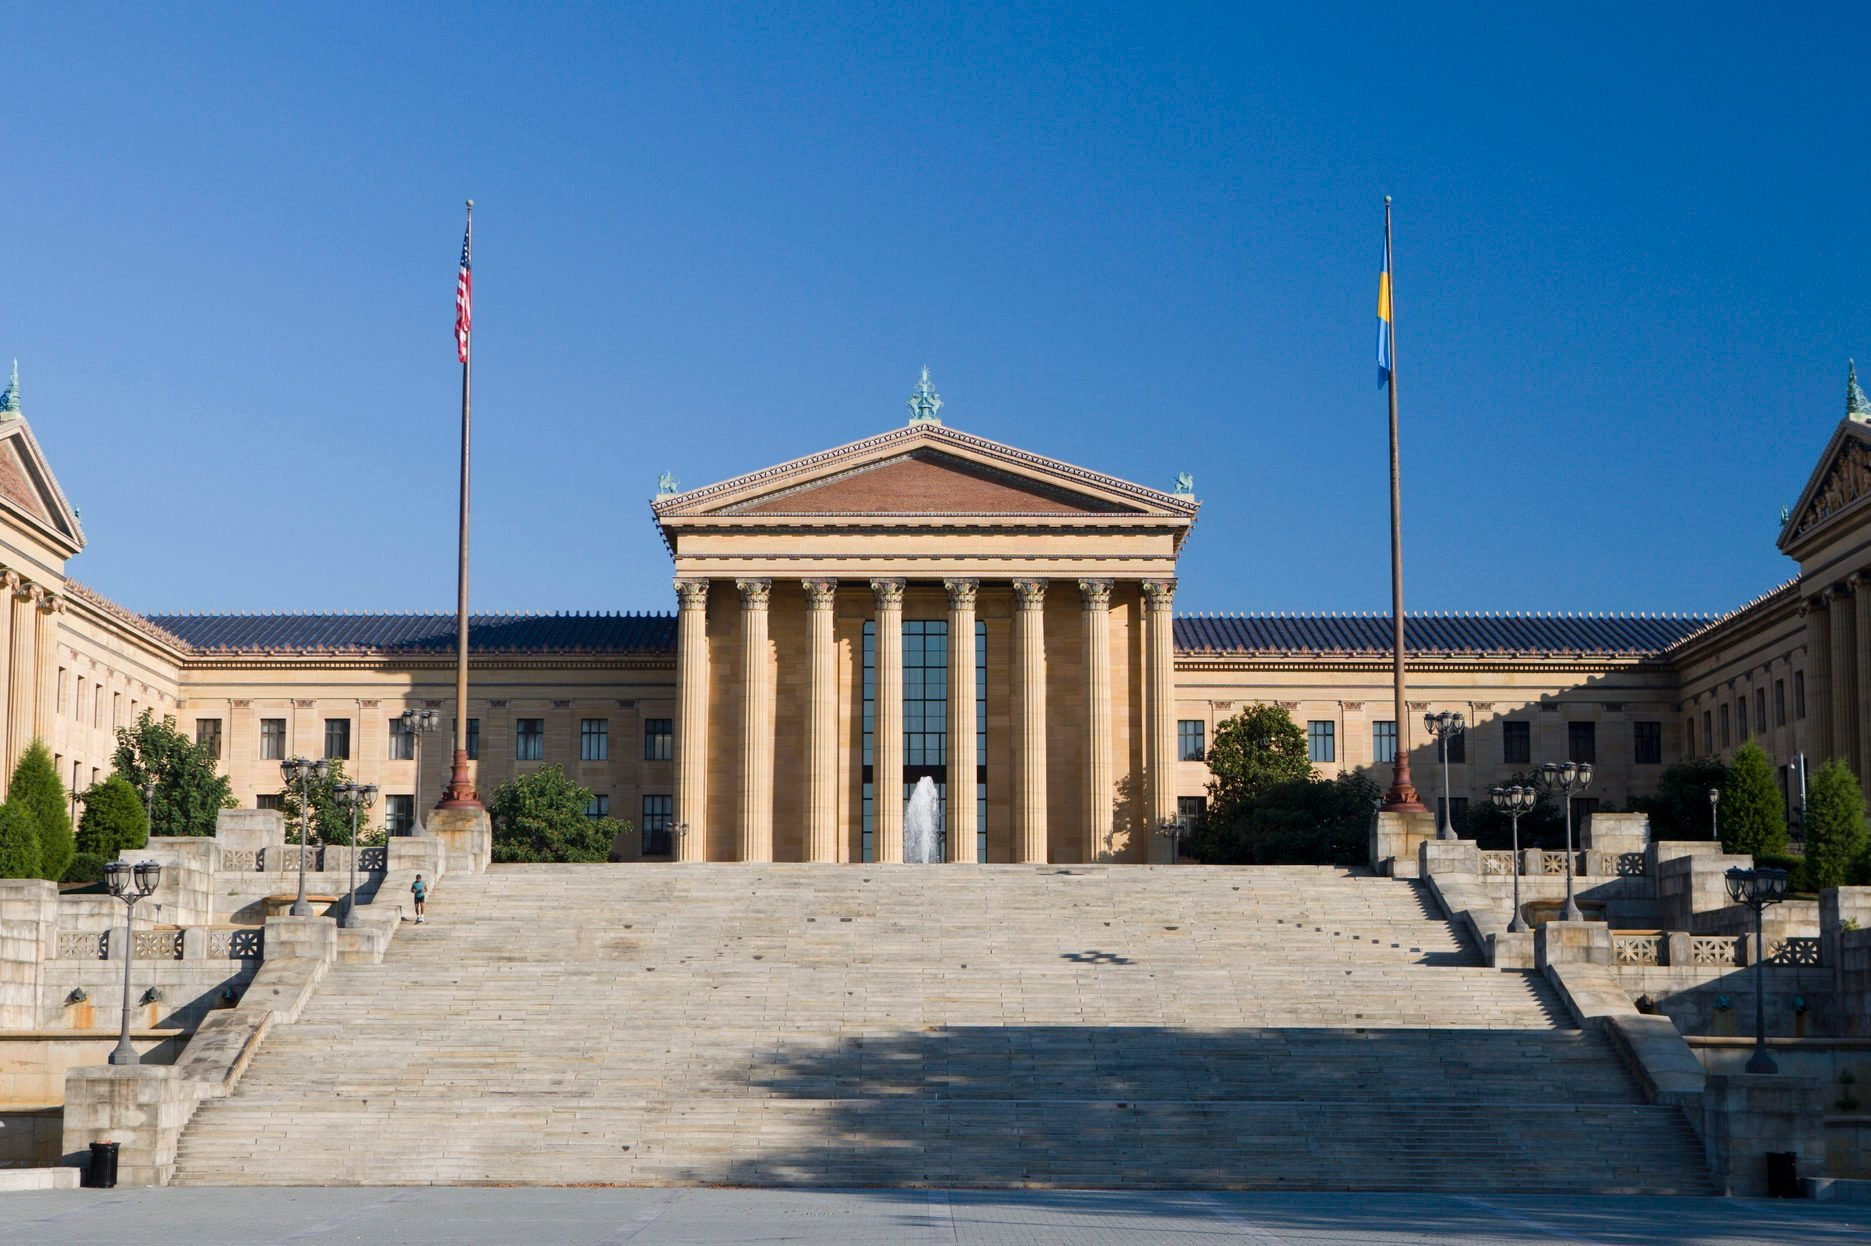 Exterior of the Philadelphia Museum of Art